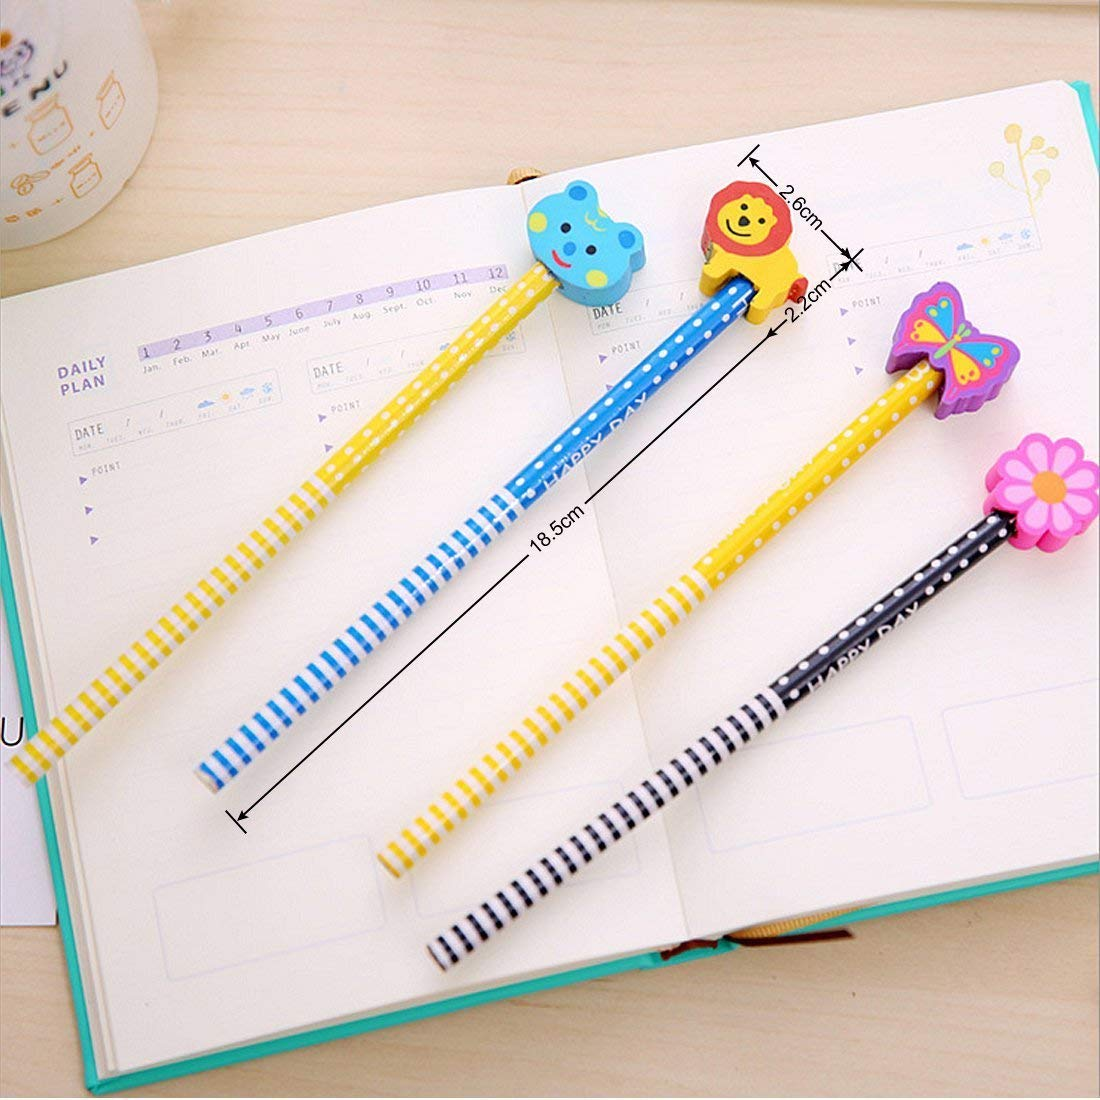 Pencils Hardness, Morkia 20 Pieces Set of Pencil Cartoon Pencils Kids Wooden with Erasers School Supplies Gift for Children, for Birthday Party Kids Festival Party